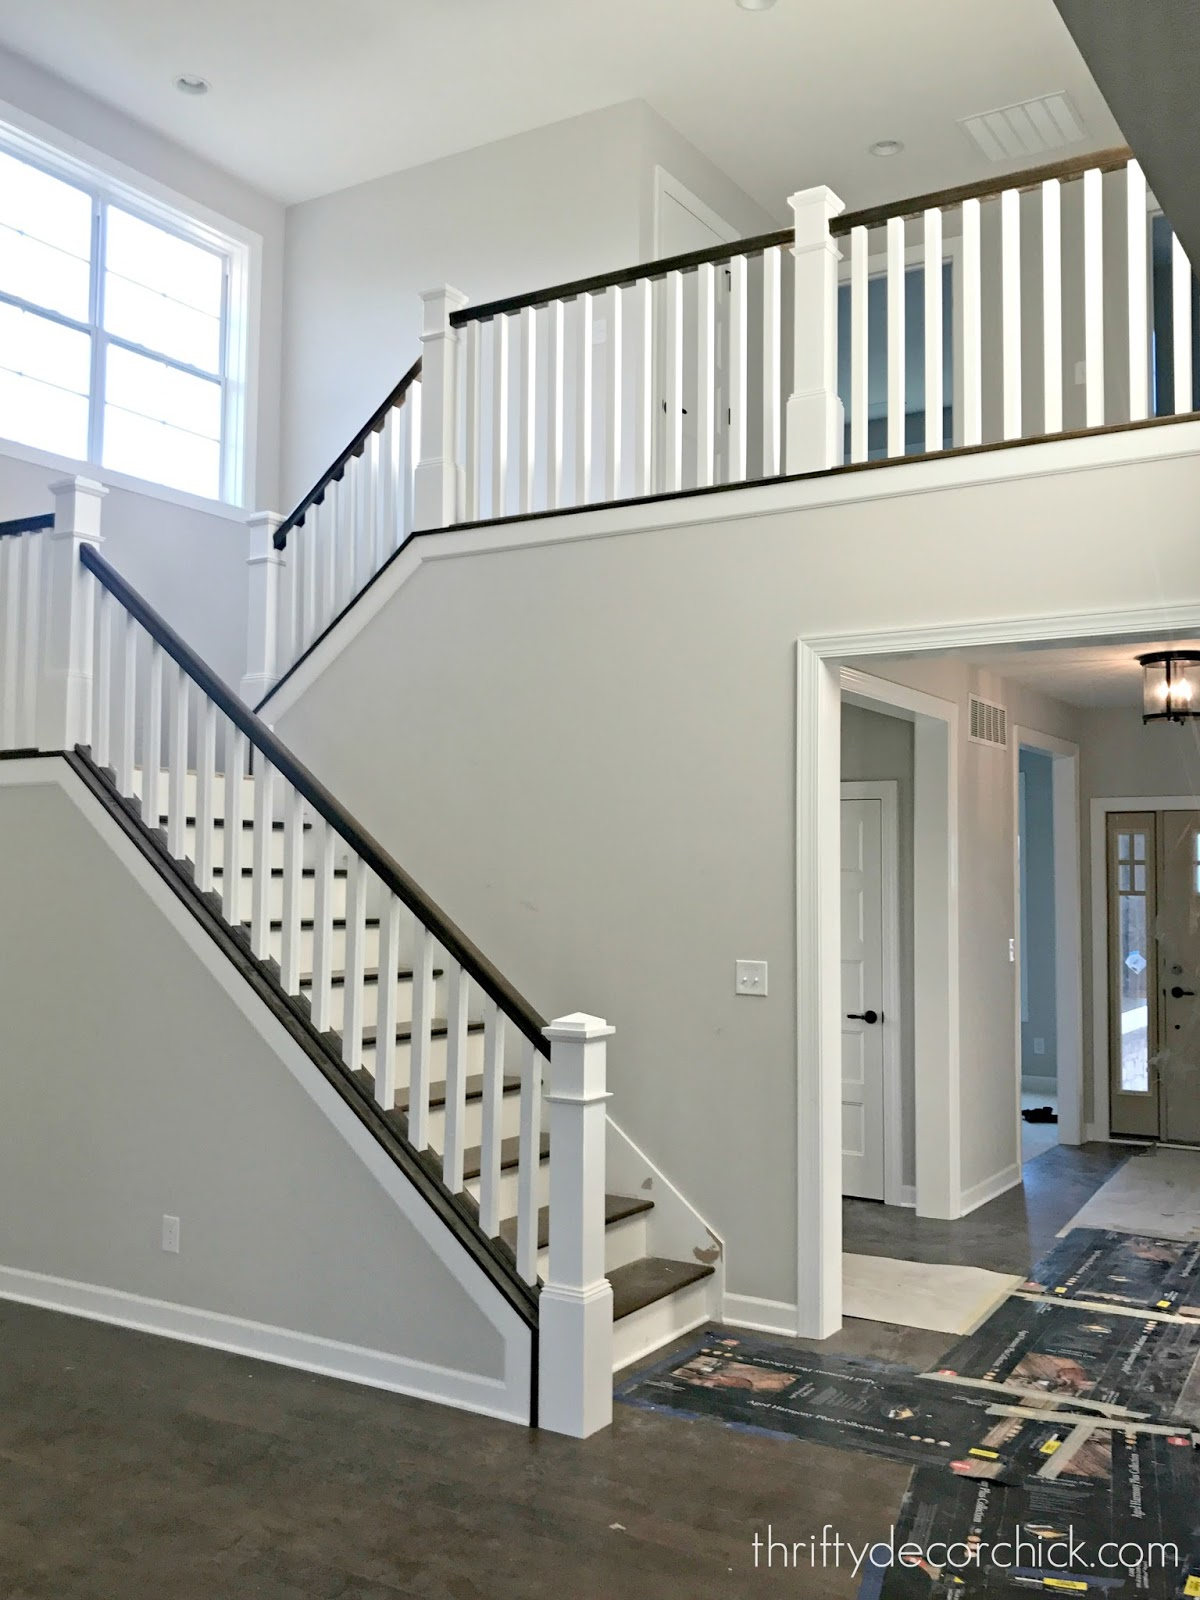 Our Christmas Staircase From Thrifty Decor Ch*Ck   White Handrails For Stairs Interior   Grey Treads   Safety   Richard Burbidge   Ship Lap   Aluminum